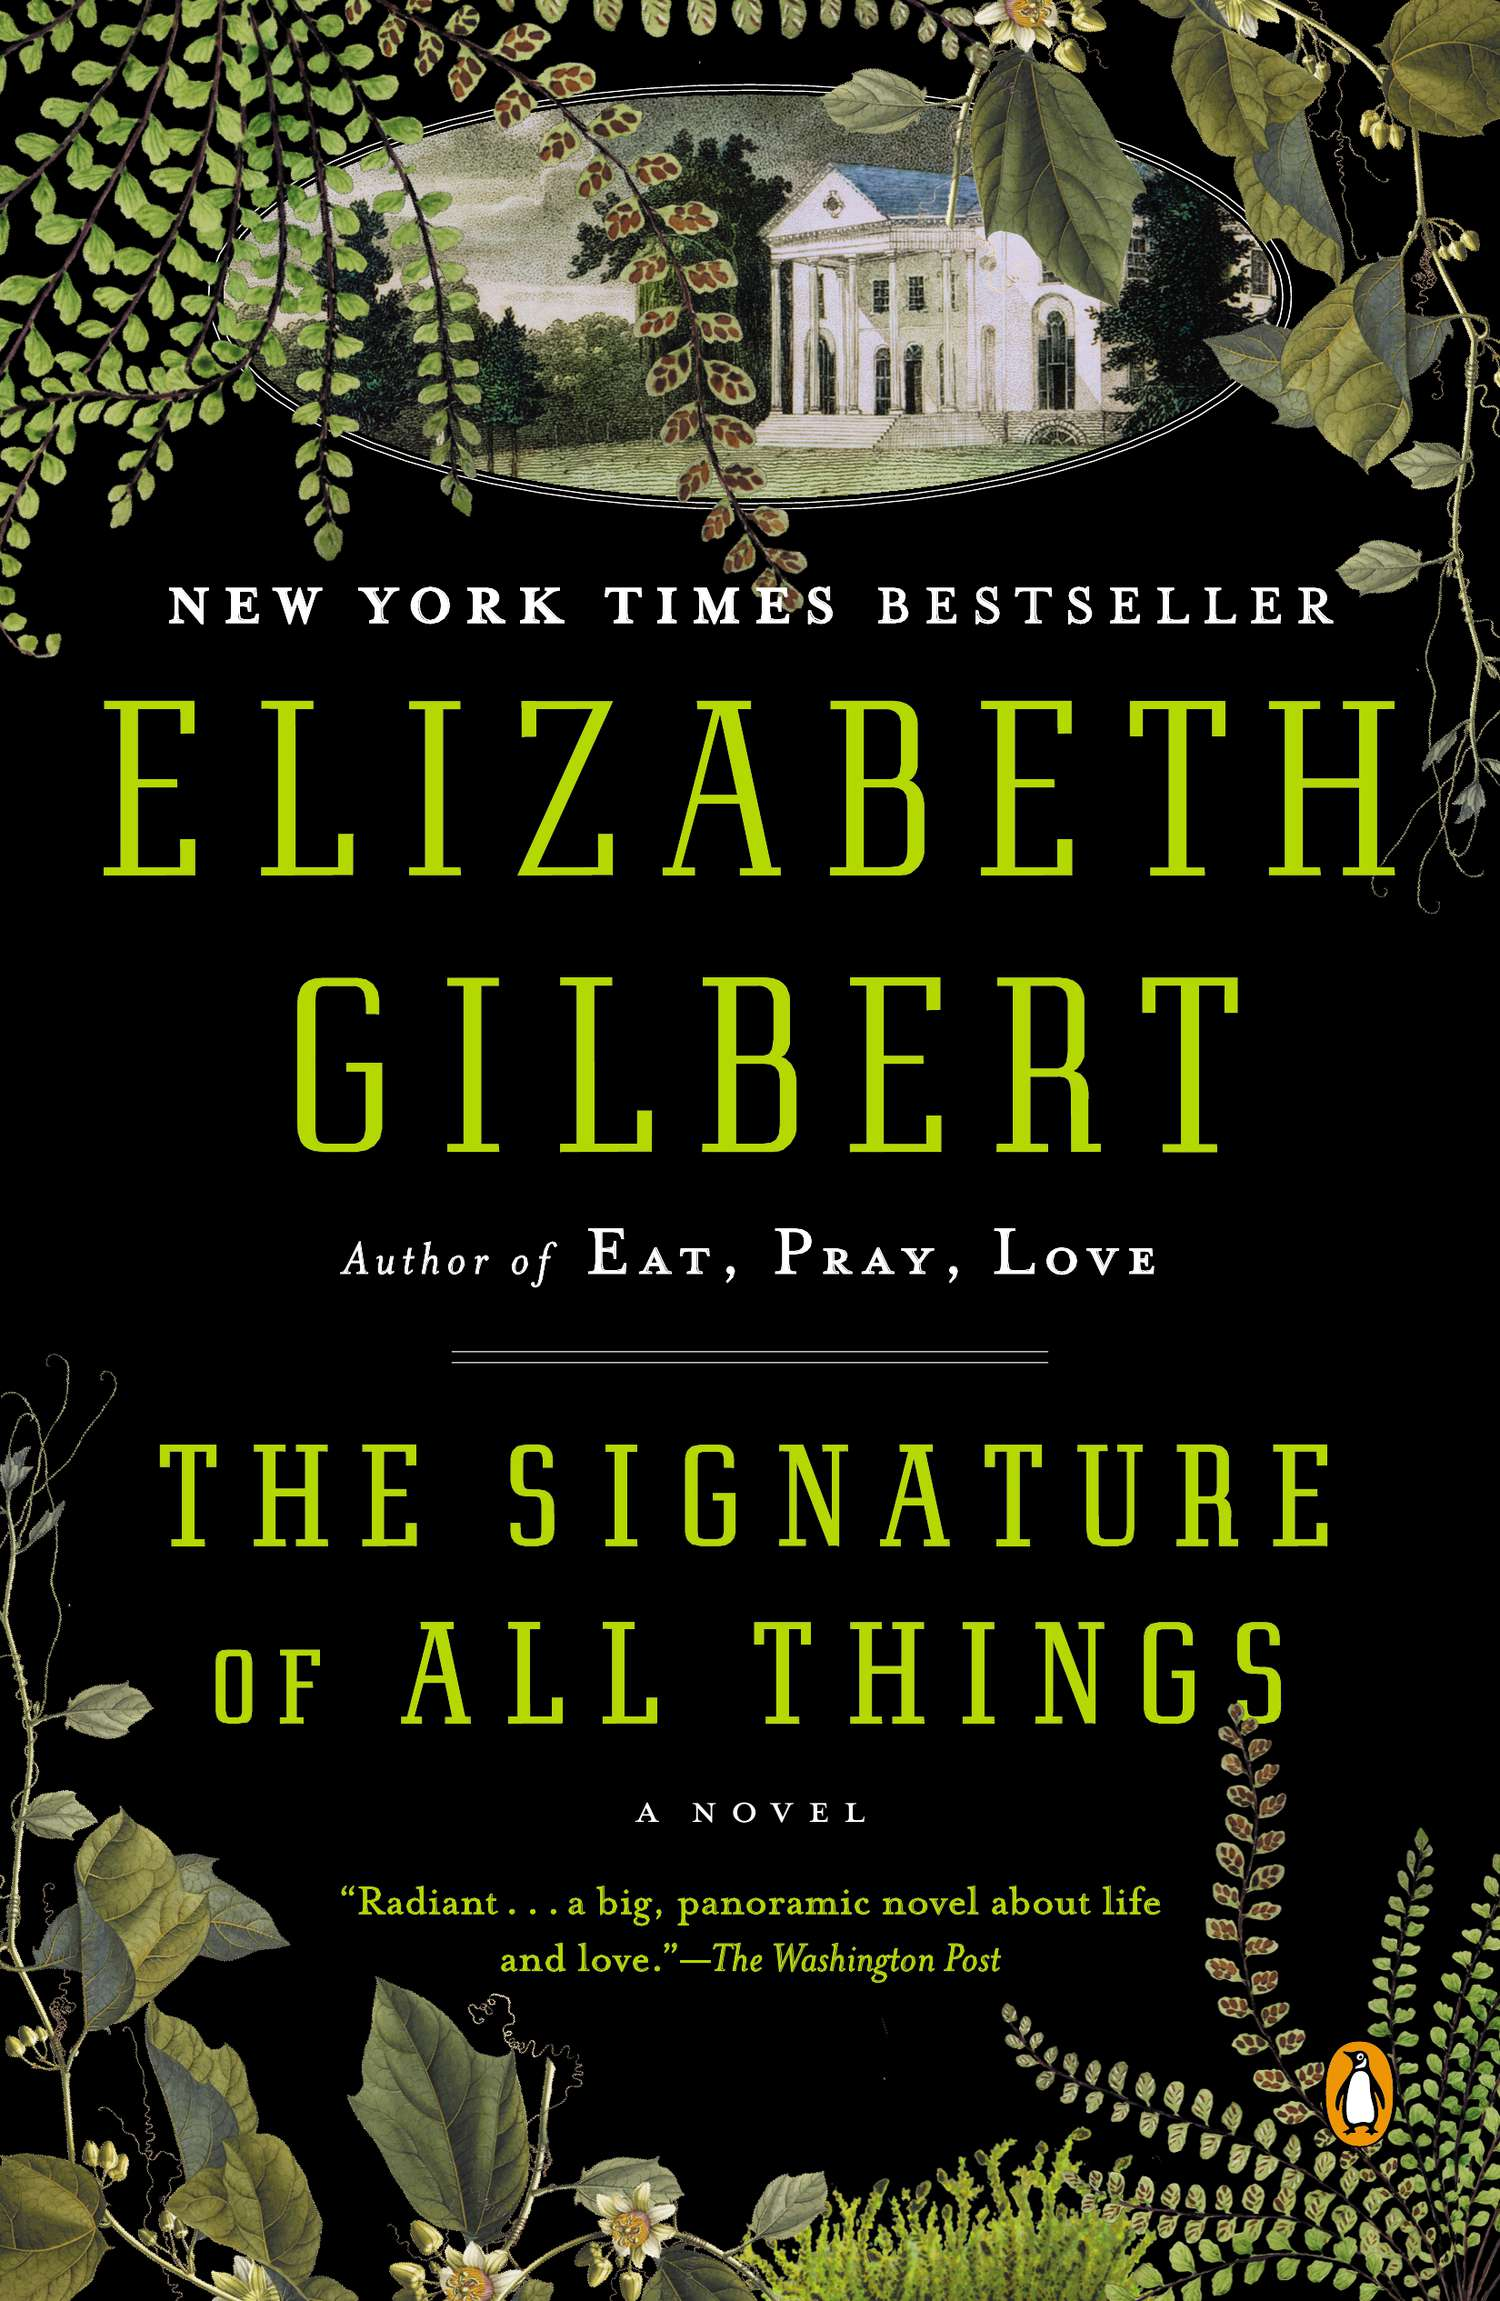 The Signature of All Things paperback.jpg